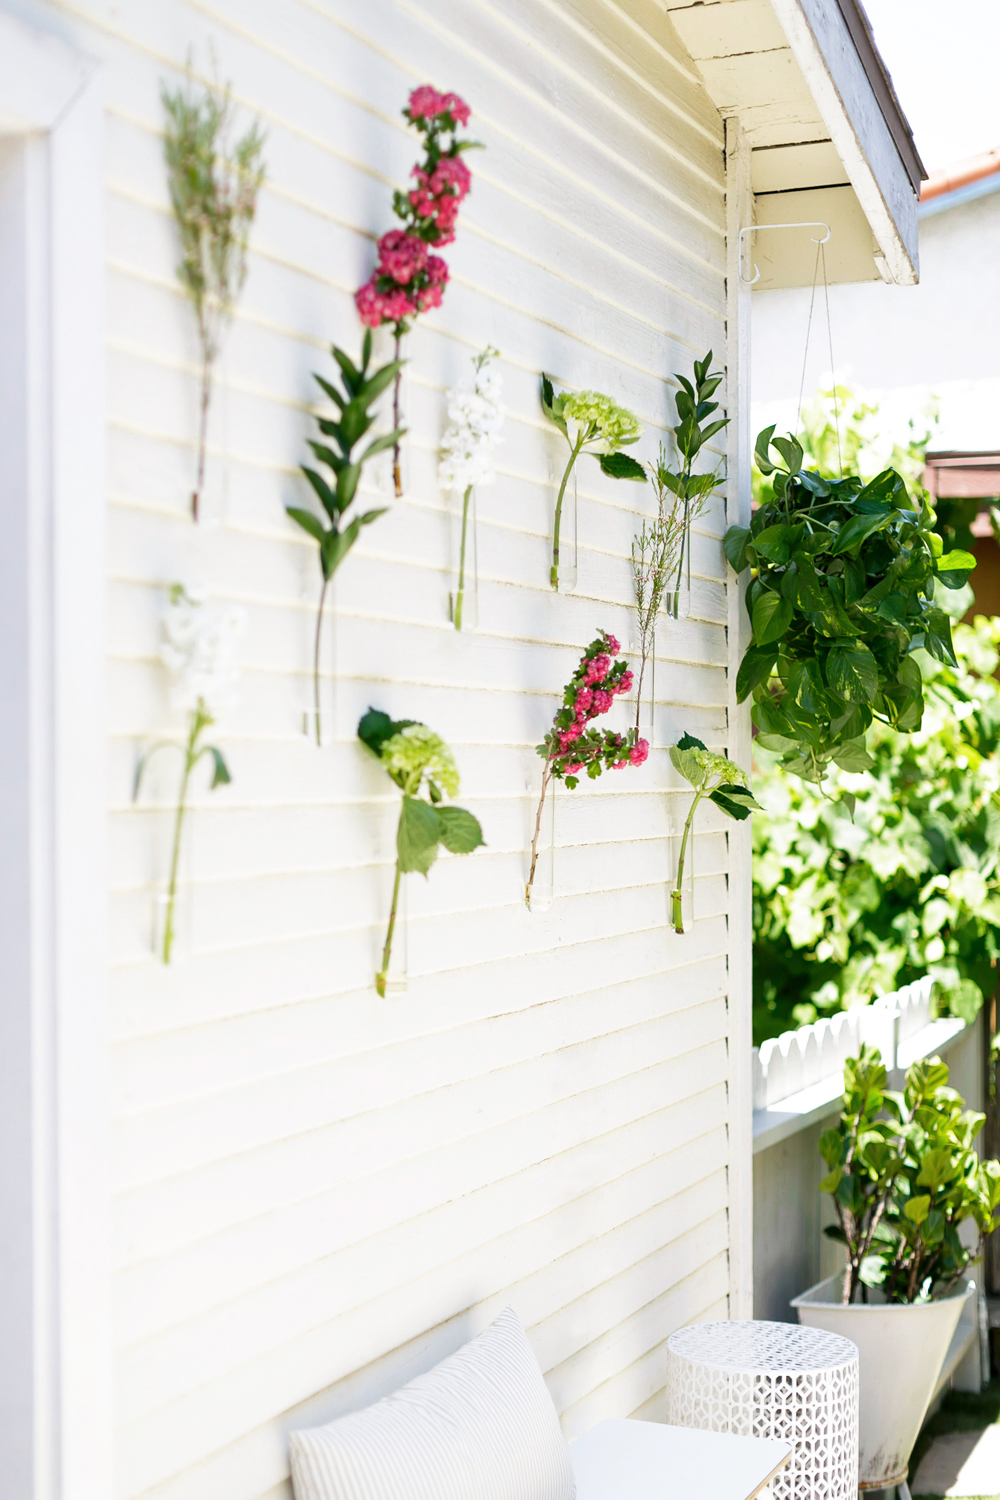 We used  beaker vases from cb2  (paired with farmers market clippings)to liven up the blank exterior walls at a minimal cost.